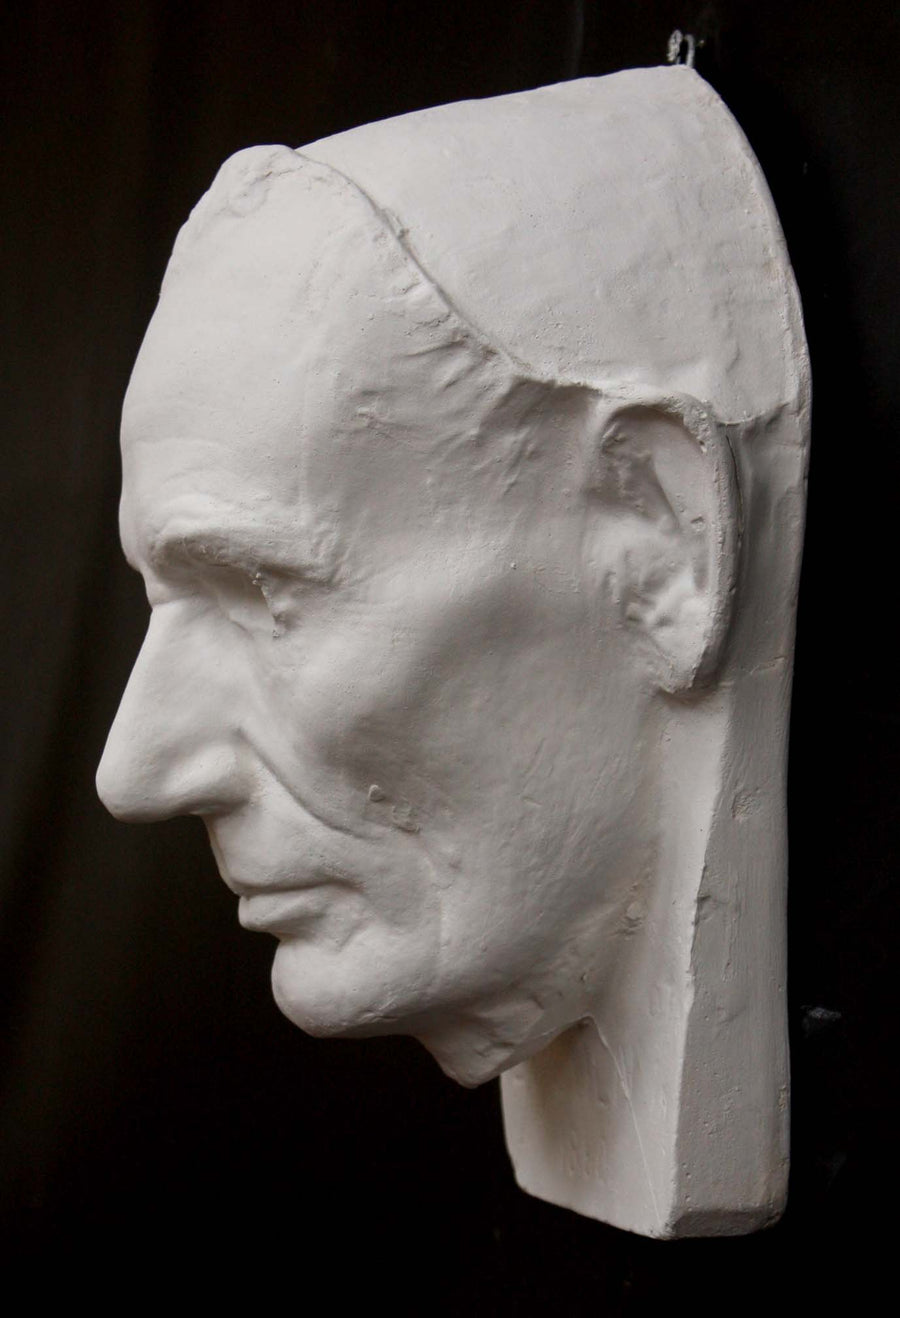 Photo of plaster cast sculpture of life mask of Abraham Lincoln from a side view on a black background